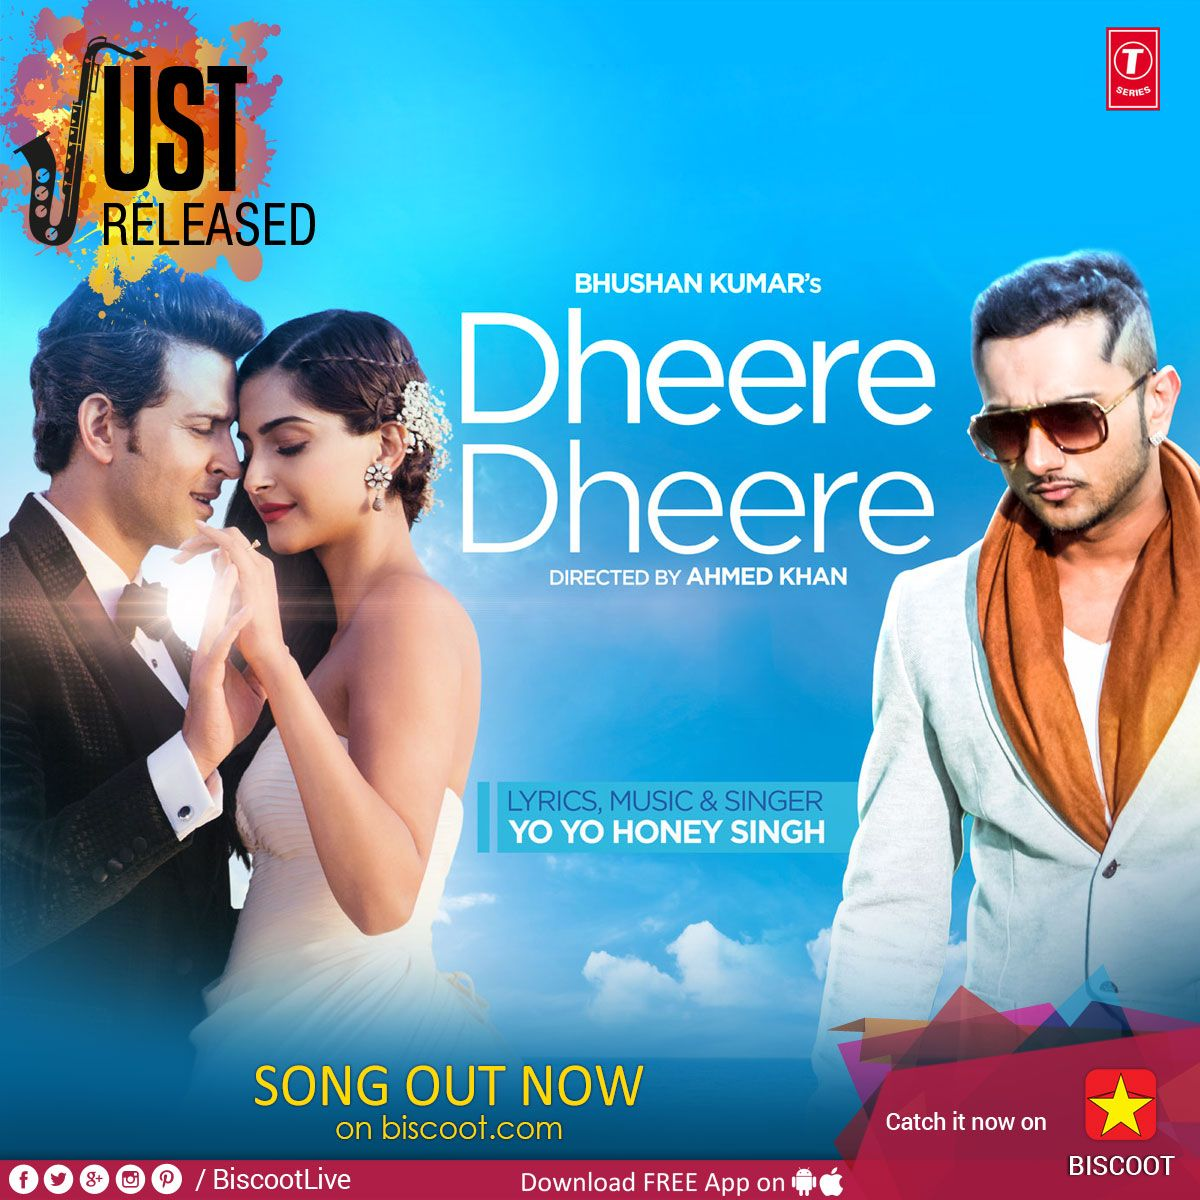 Listen To Dheere Dheere Se Meri Zindagi Song Recreated By